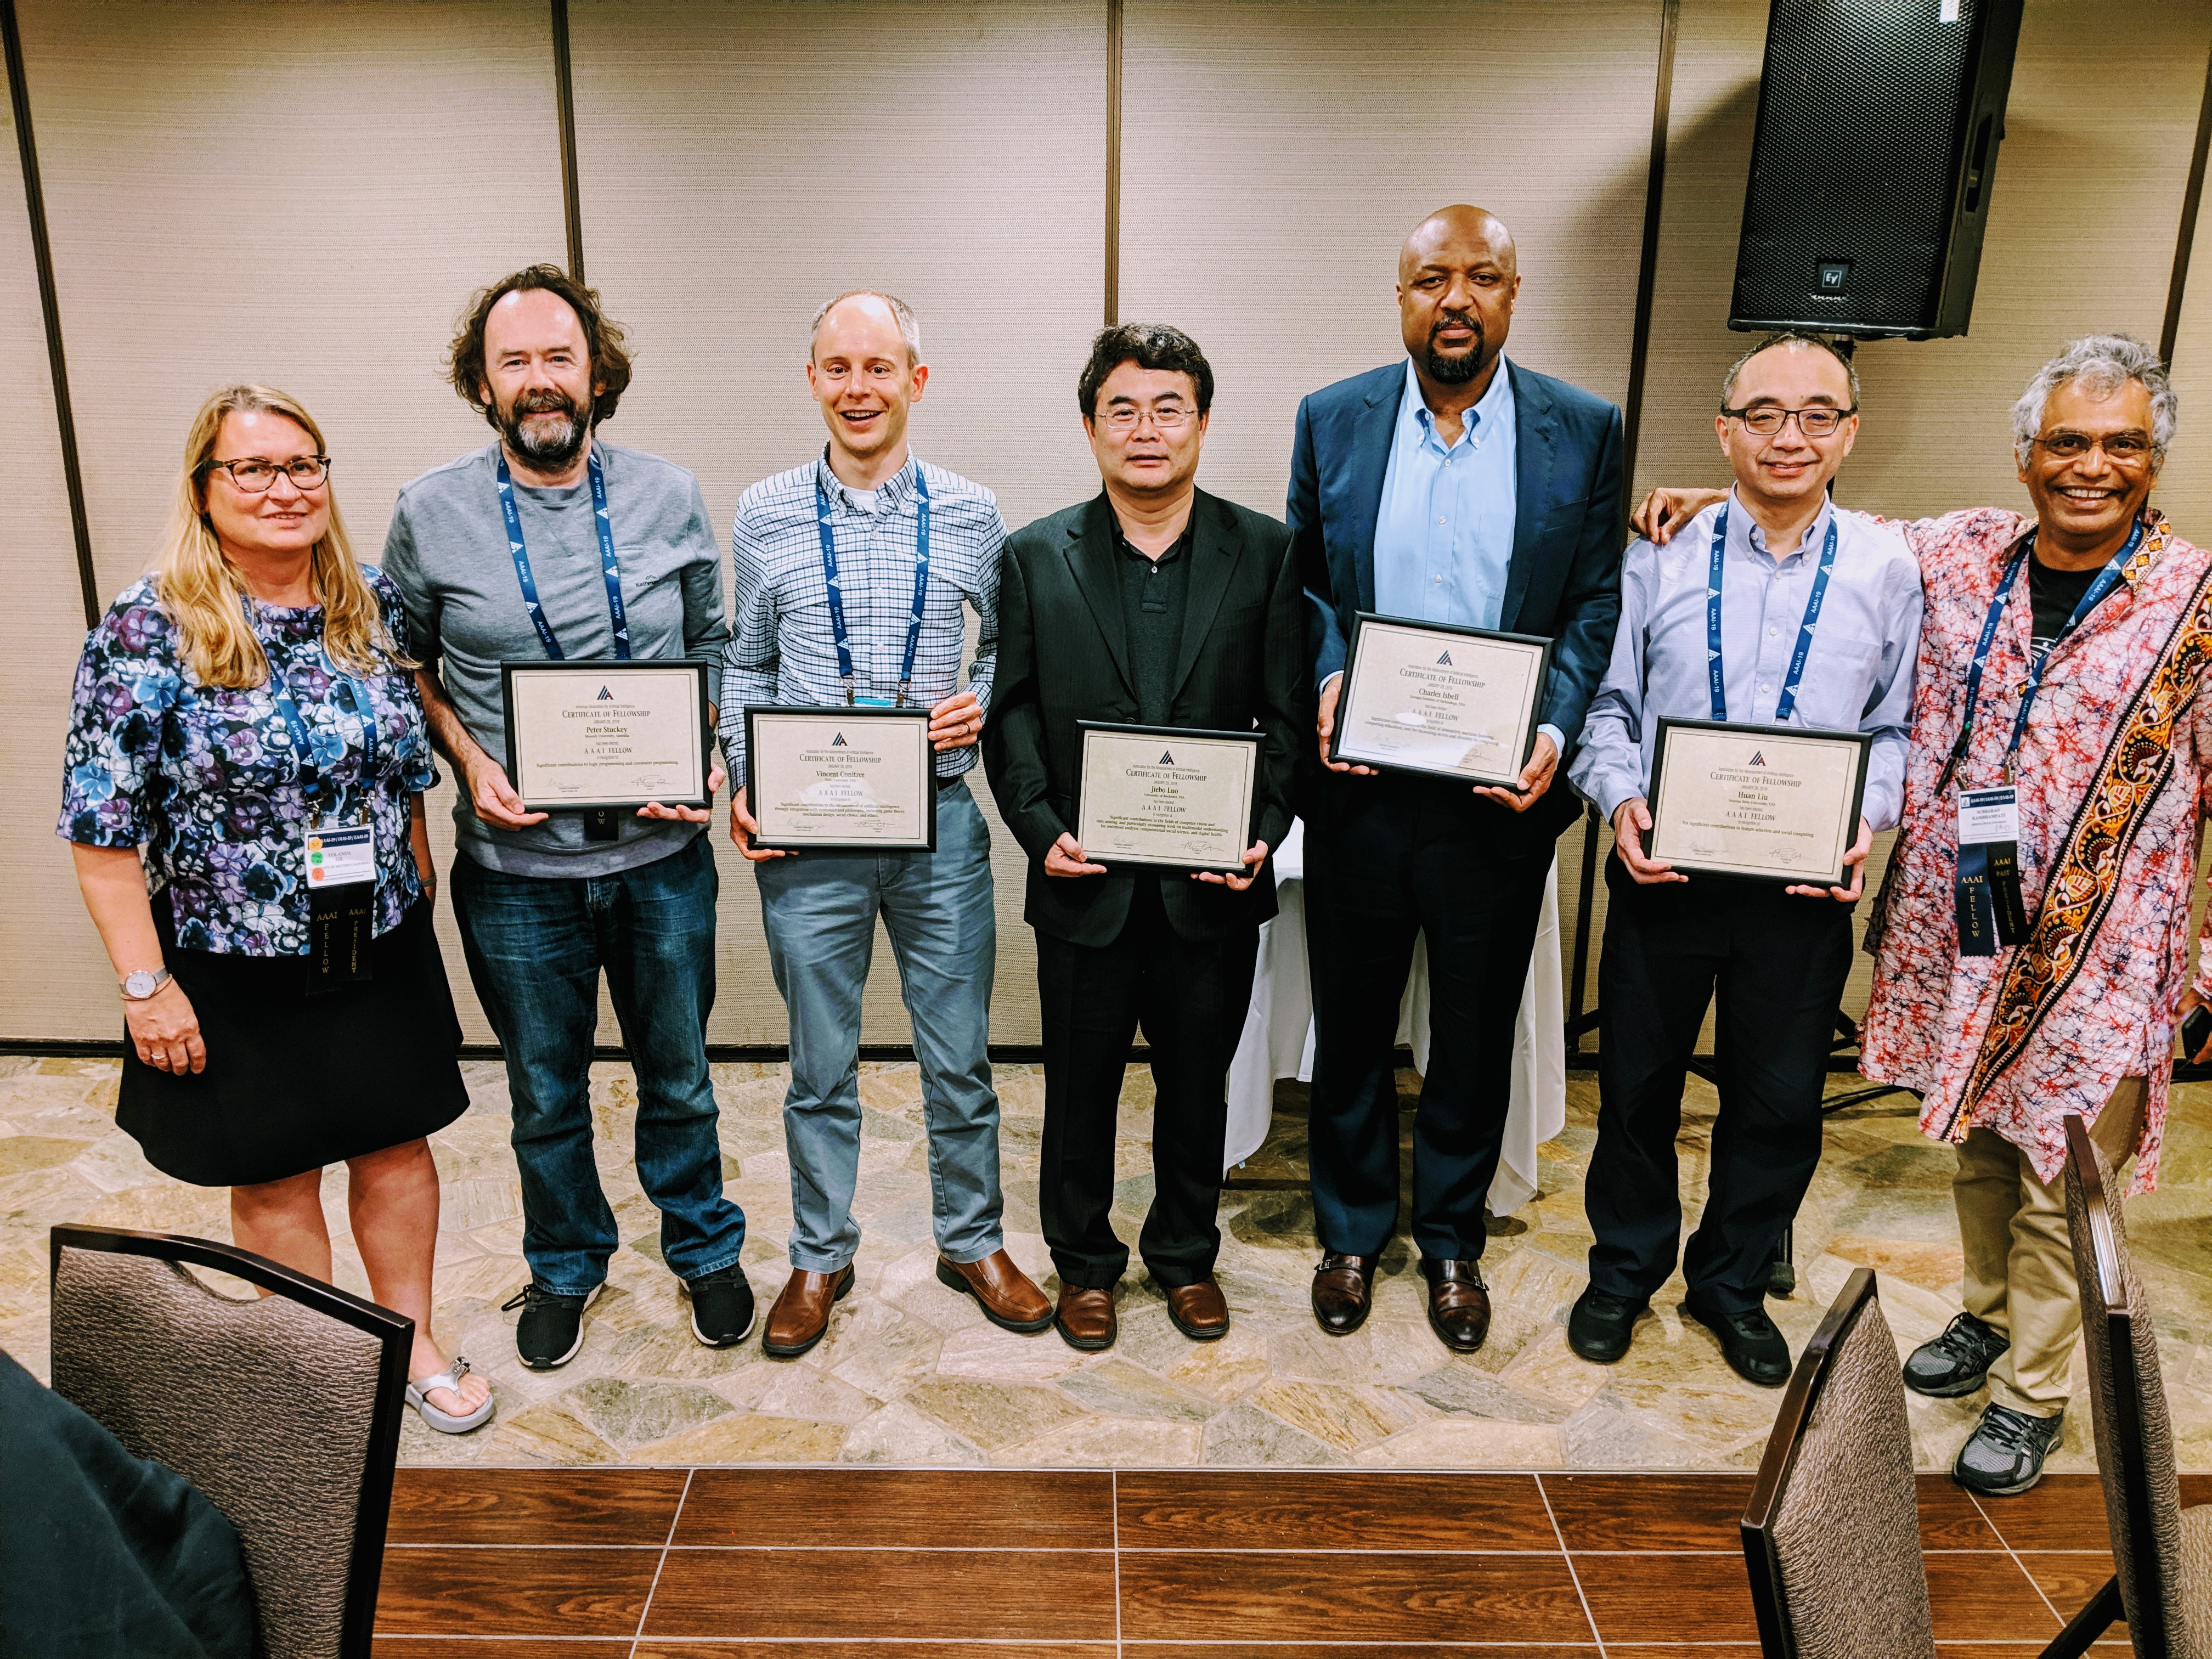 Prof. Luo (center) with other IEEE fellows at the 2019 IEEE Meeting